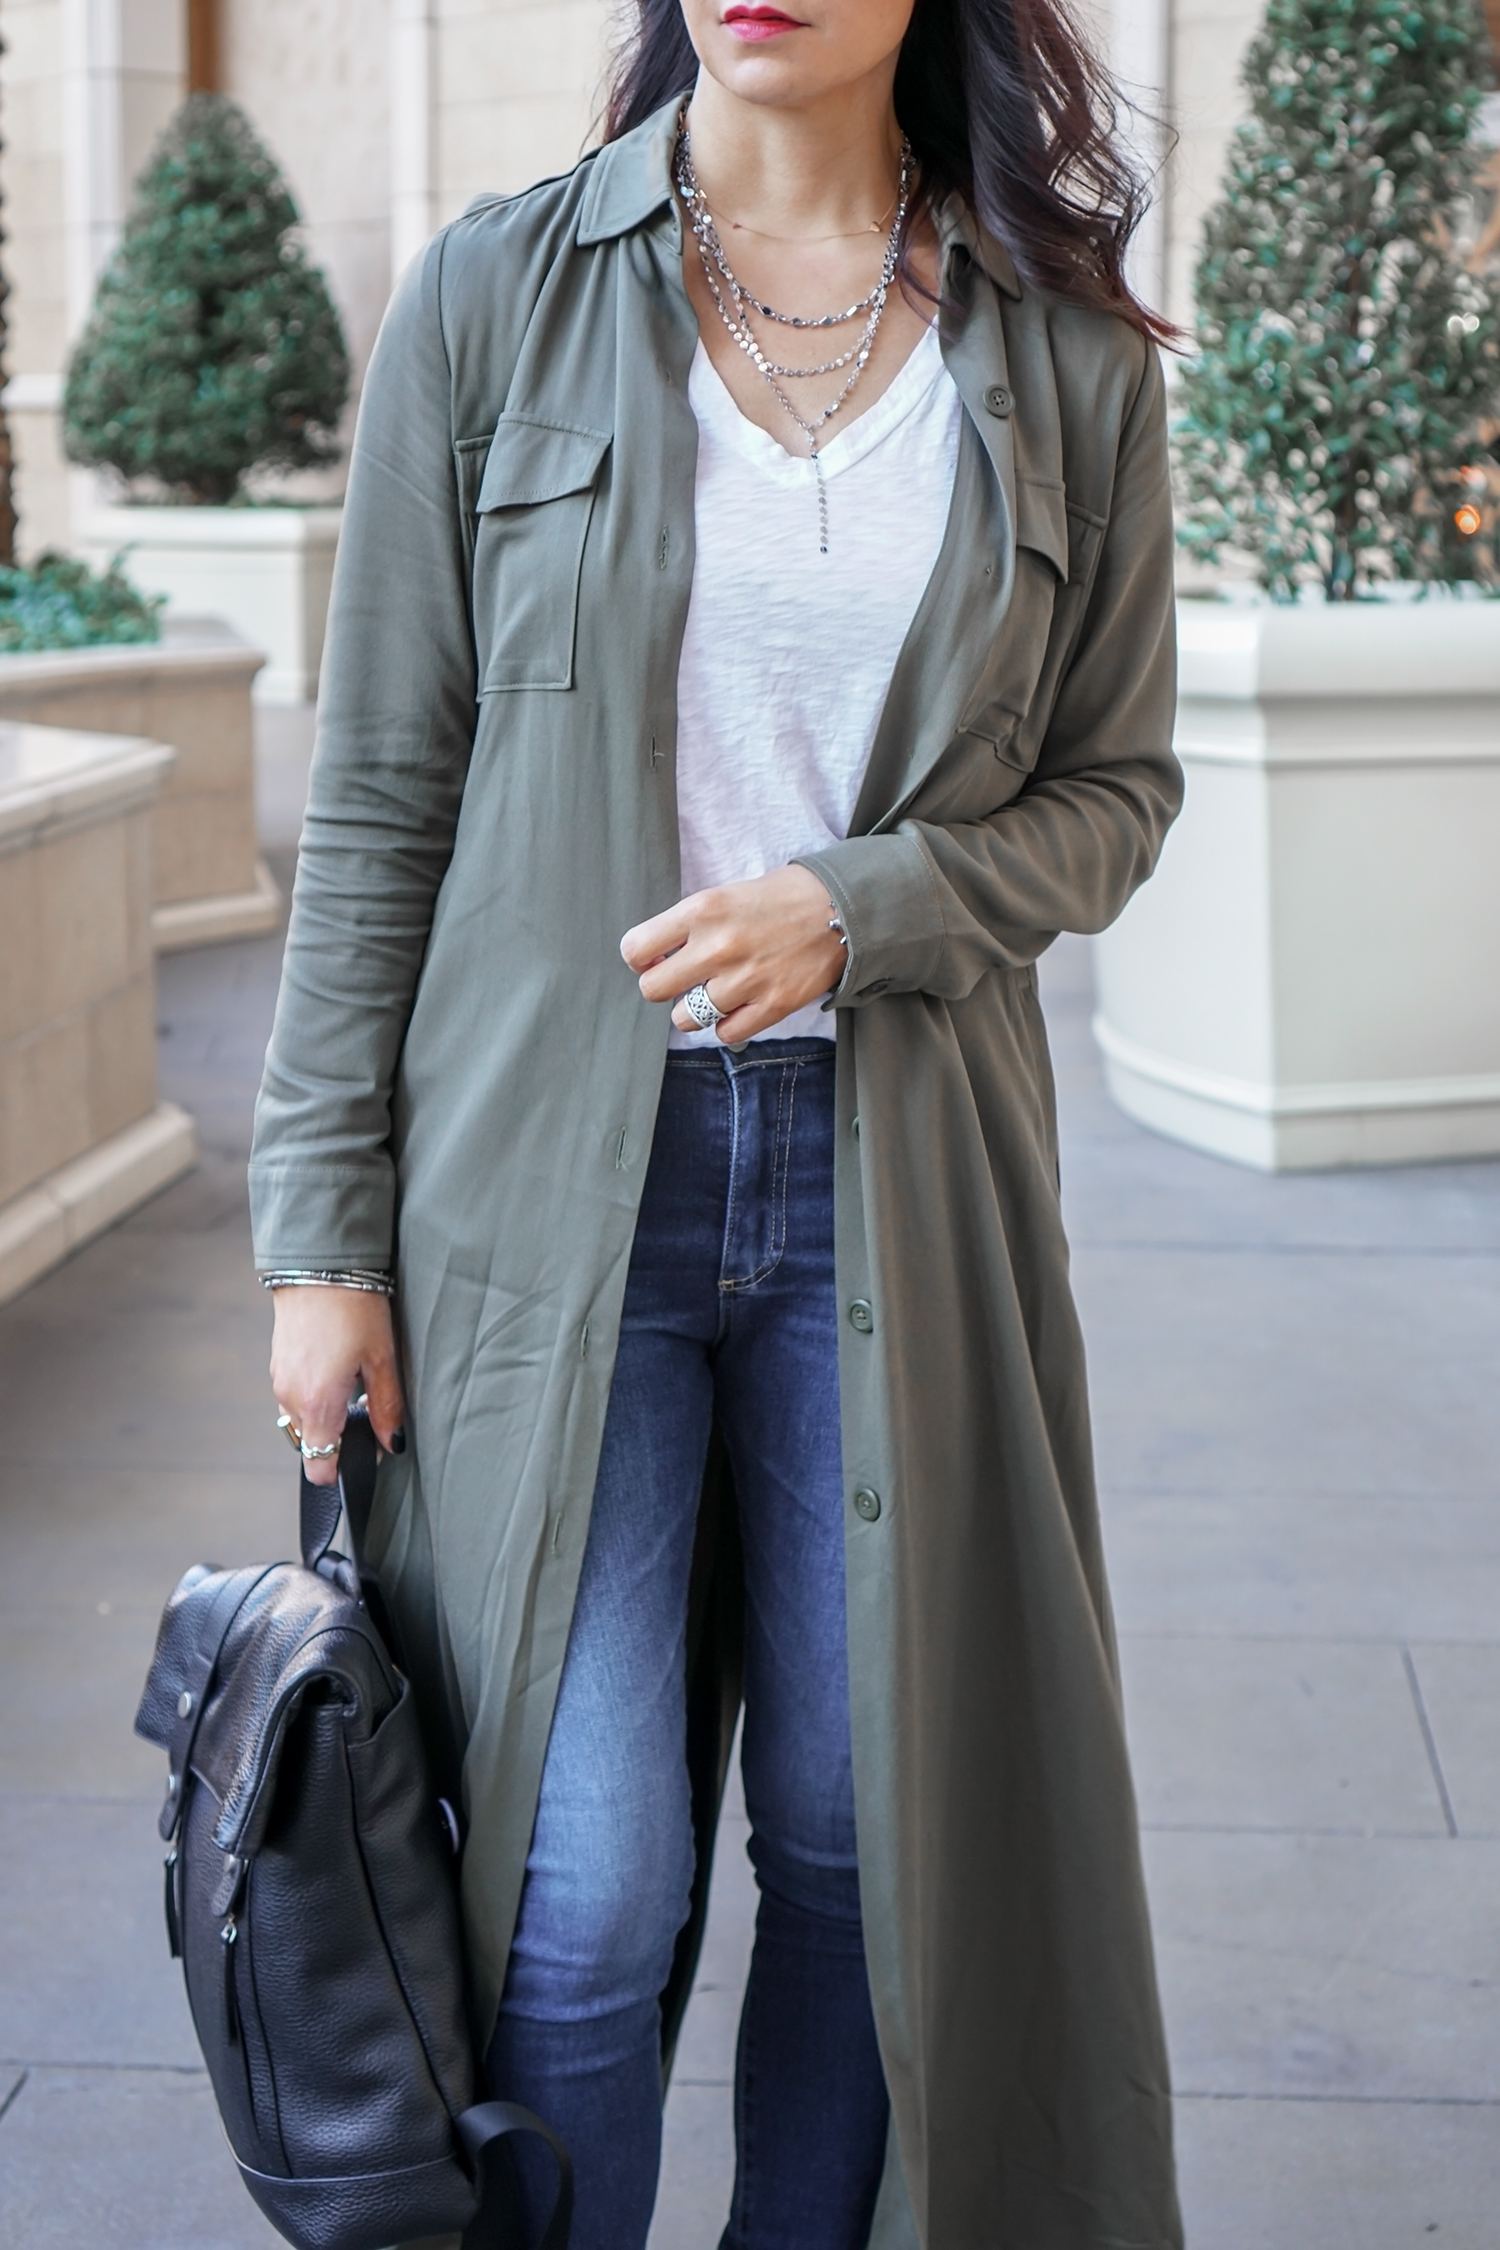 Long Duster Coat, Ankle Boots